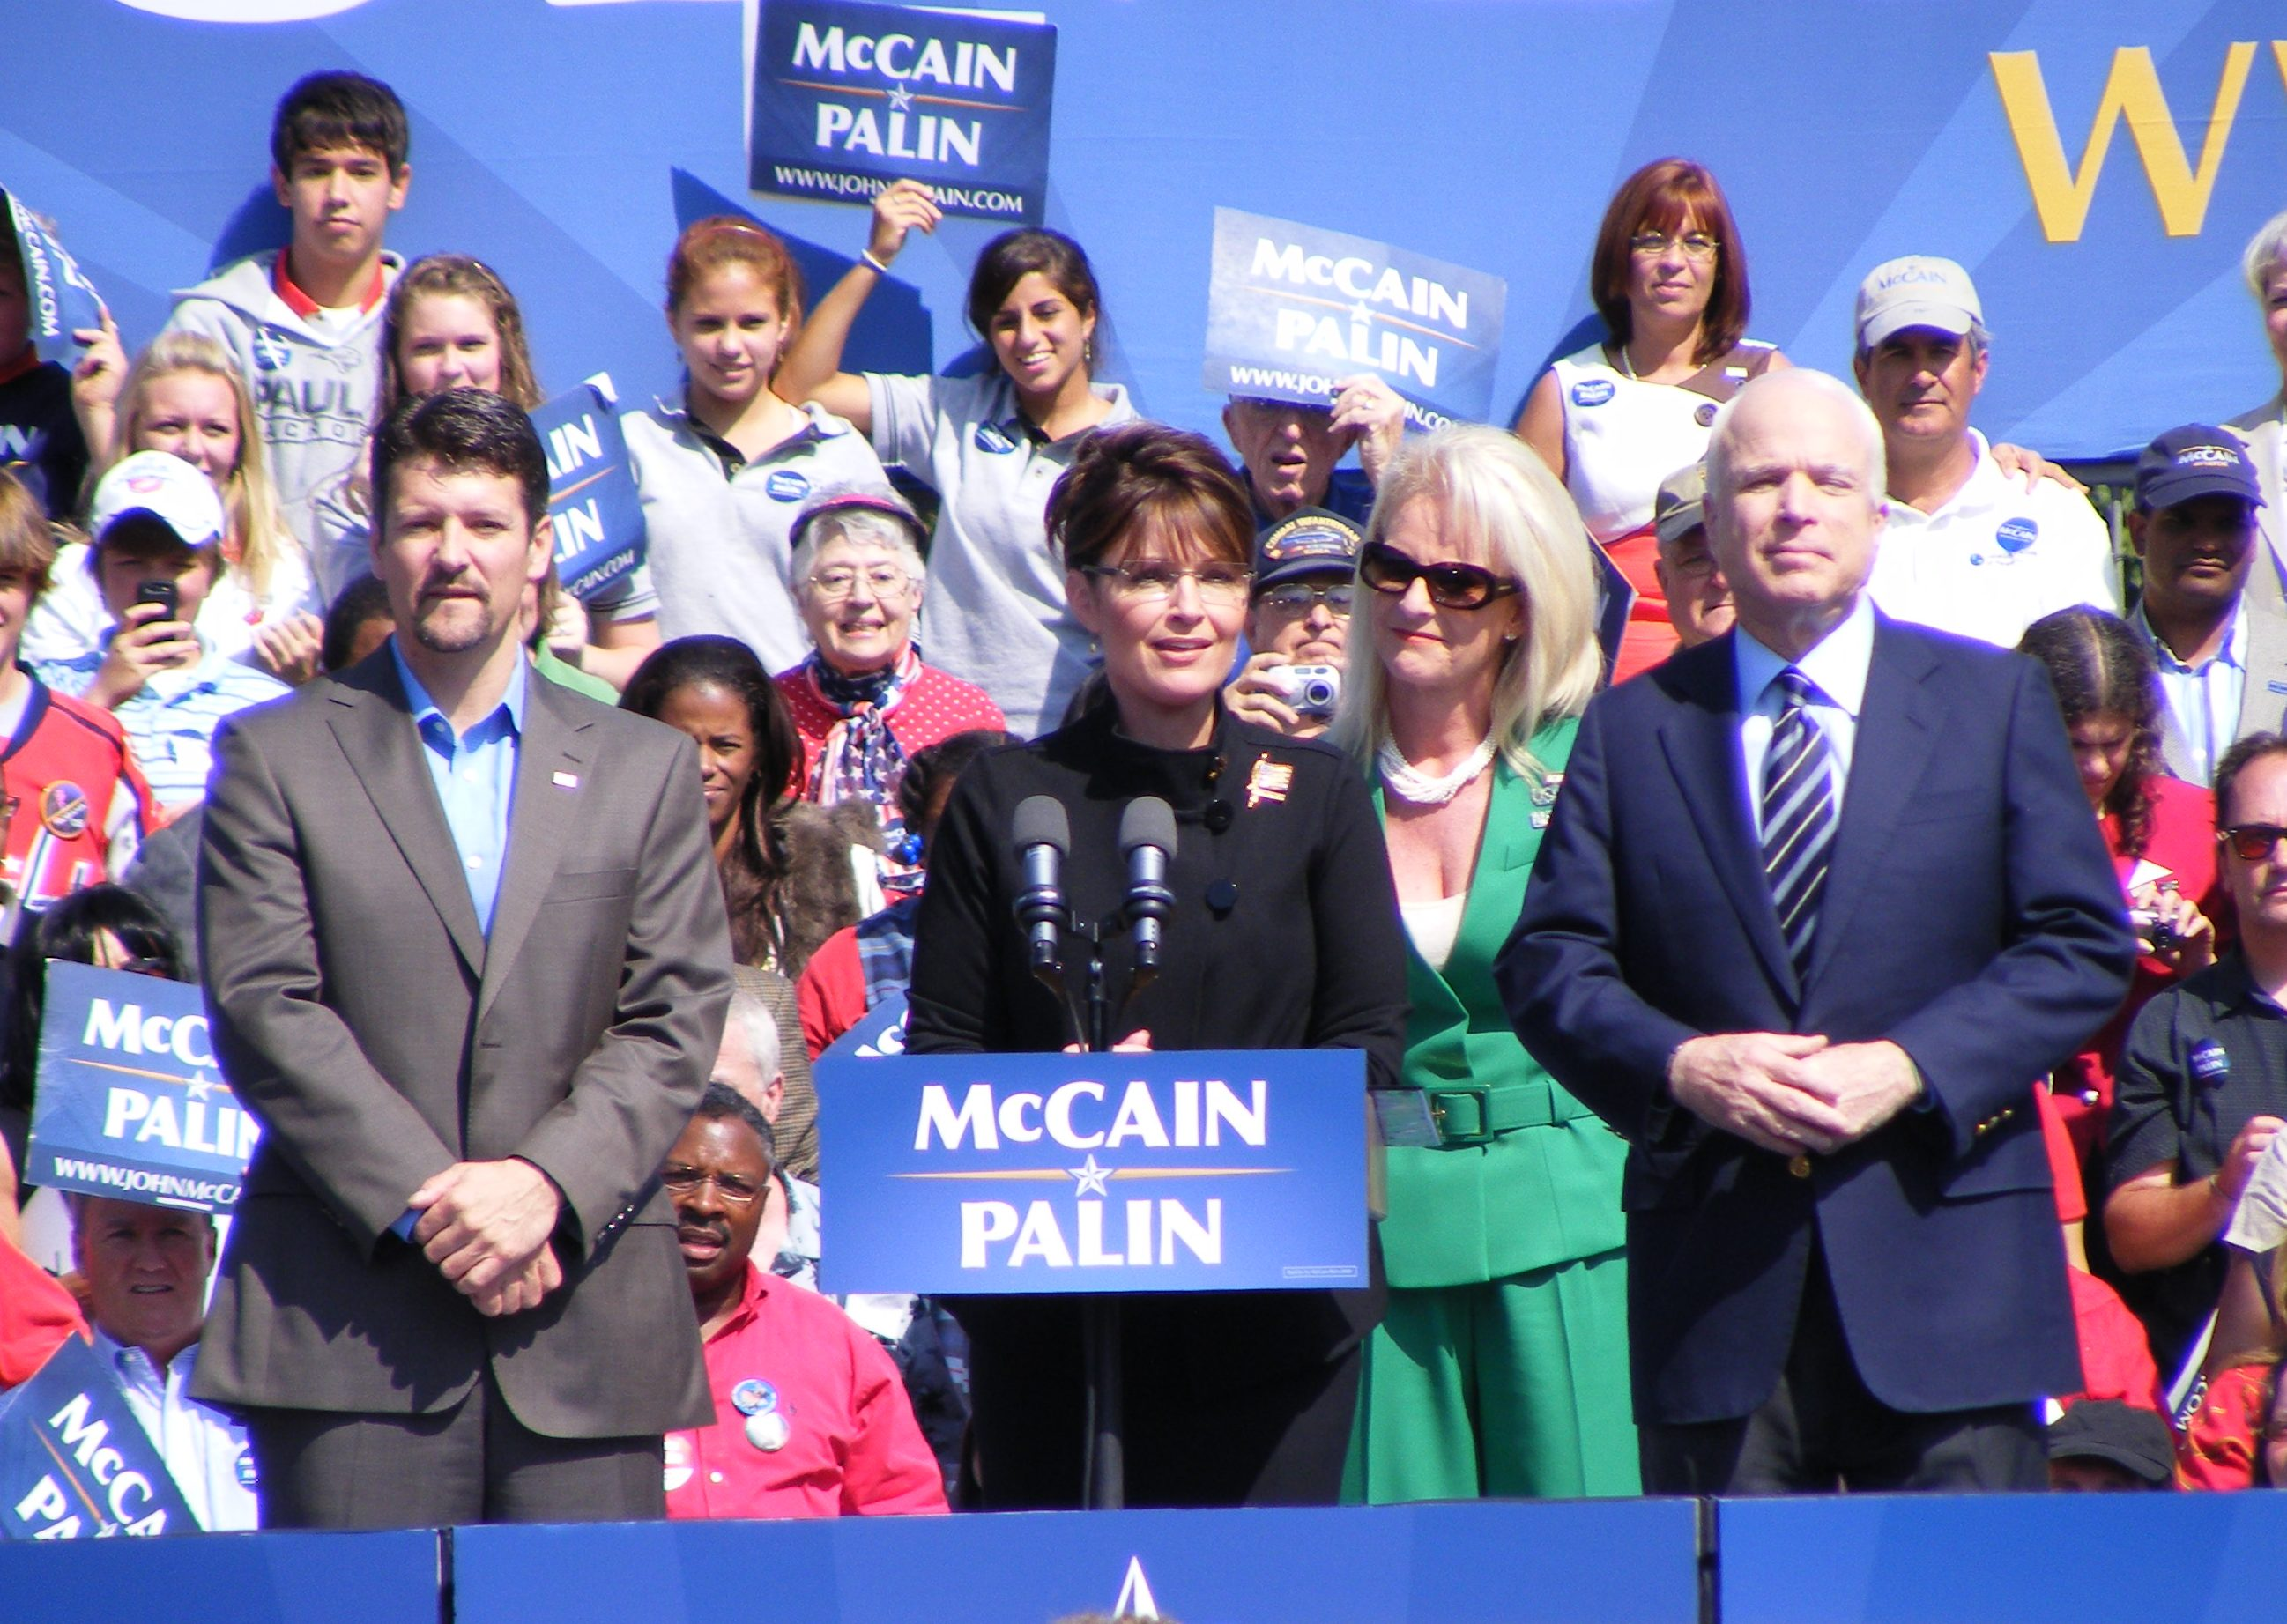 color photo of Alaska Gov. Sarah Palin, U.S. Sen. John McCain, and their spouses at a campaign appearance in Virginia on September 10, 2008